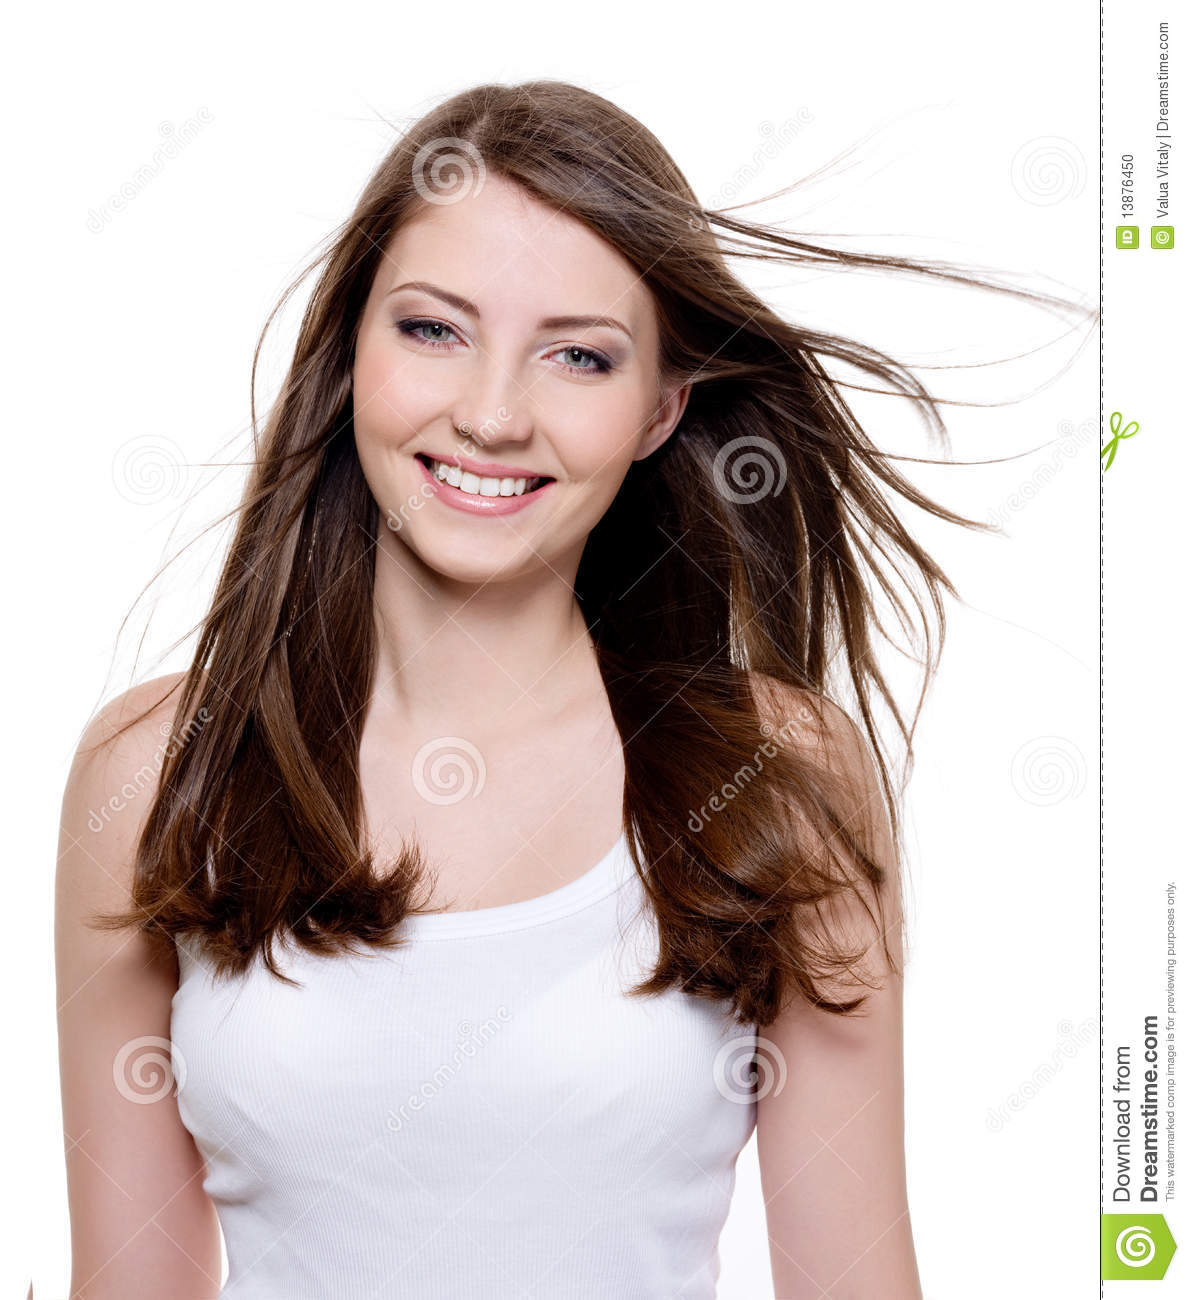 Portrait of happy young woman smiling - a Royalty Free